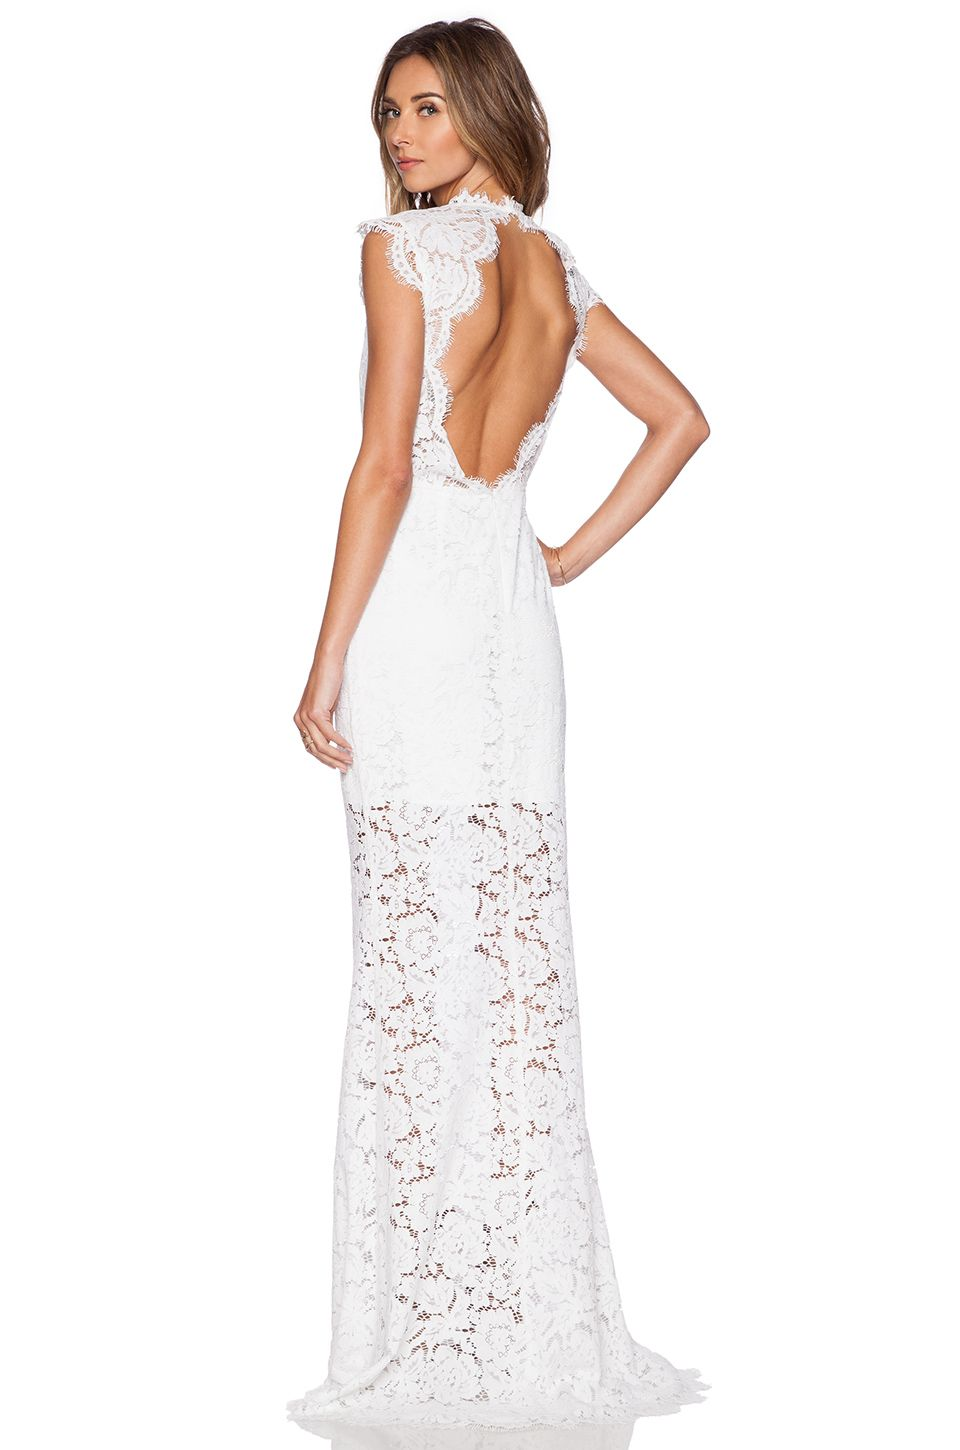 RACHEL ZOE Estelle Cutout Back Maxi Dress in Pure White | BACKLESS ...